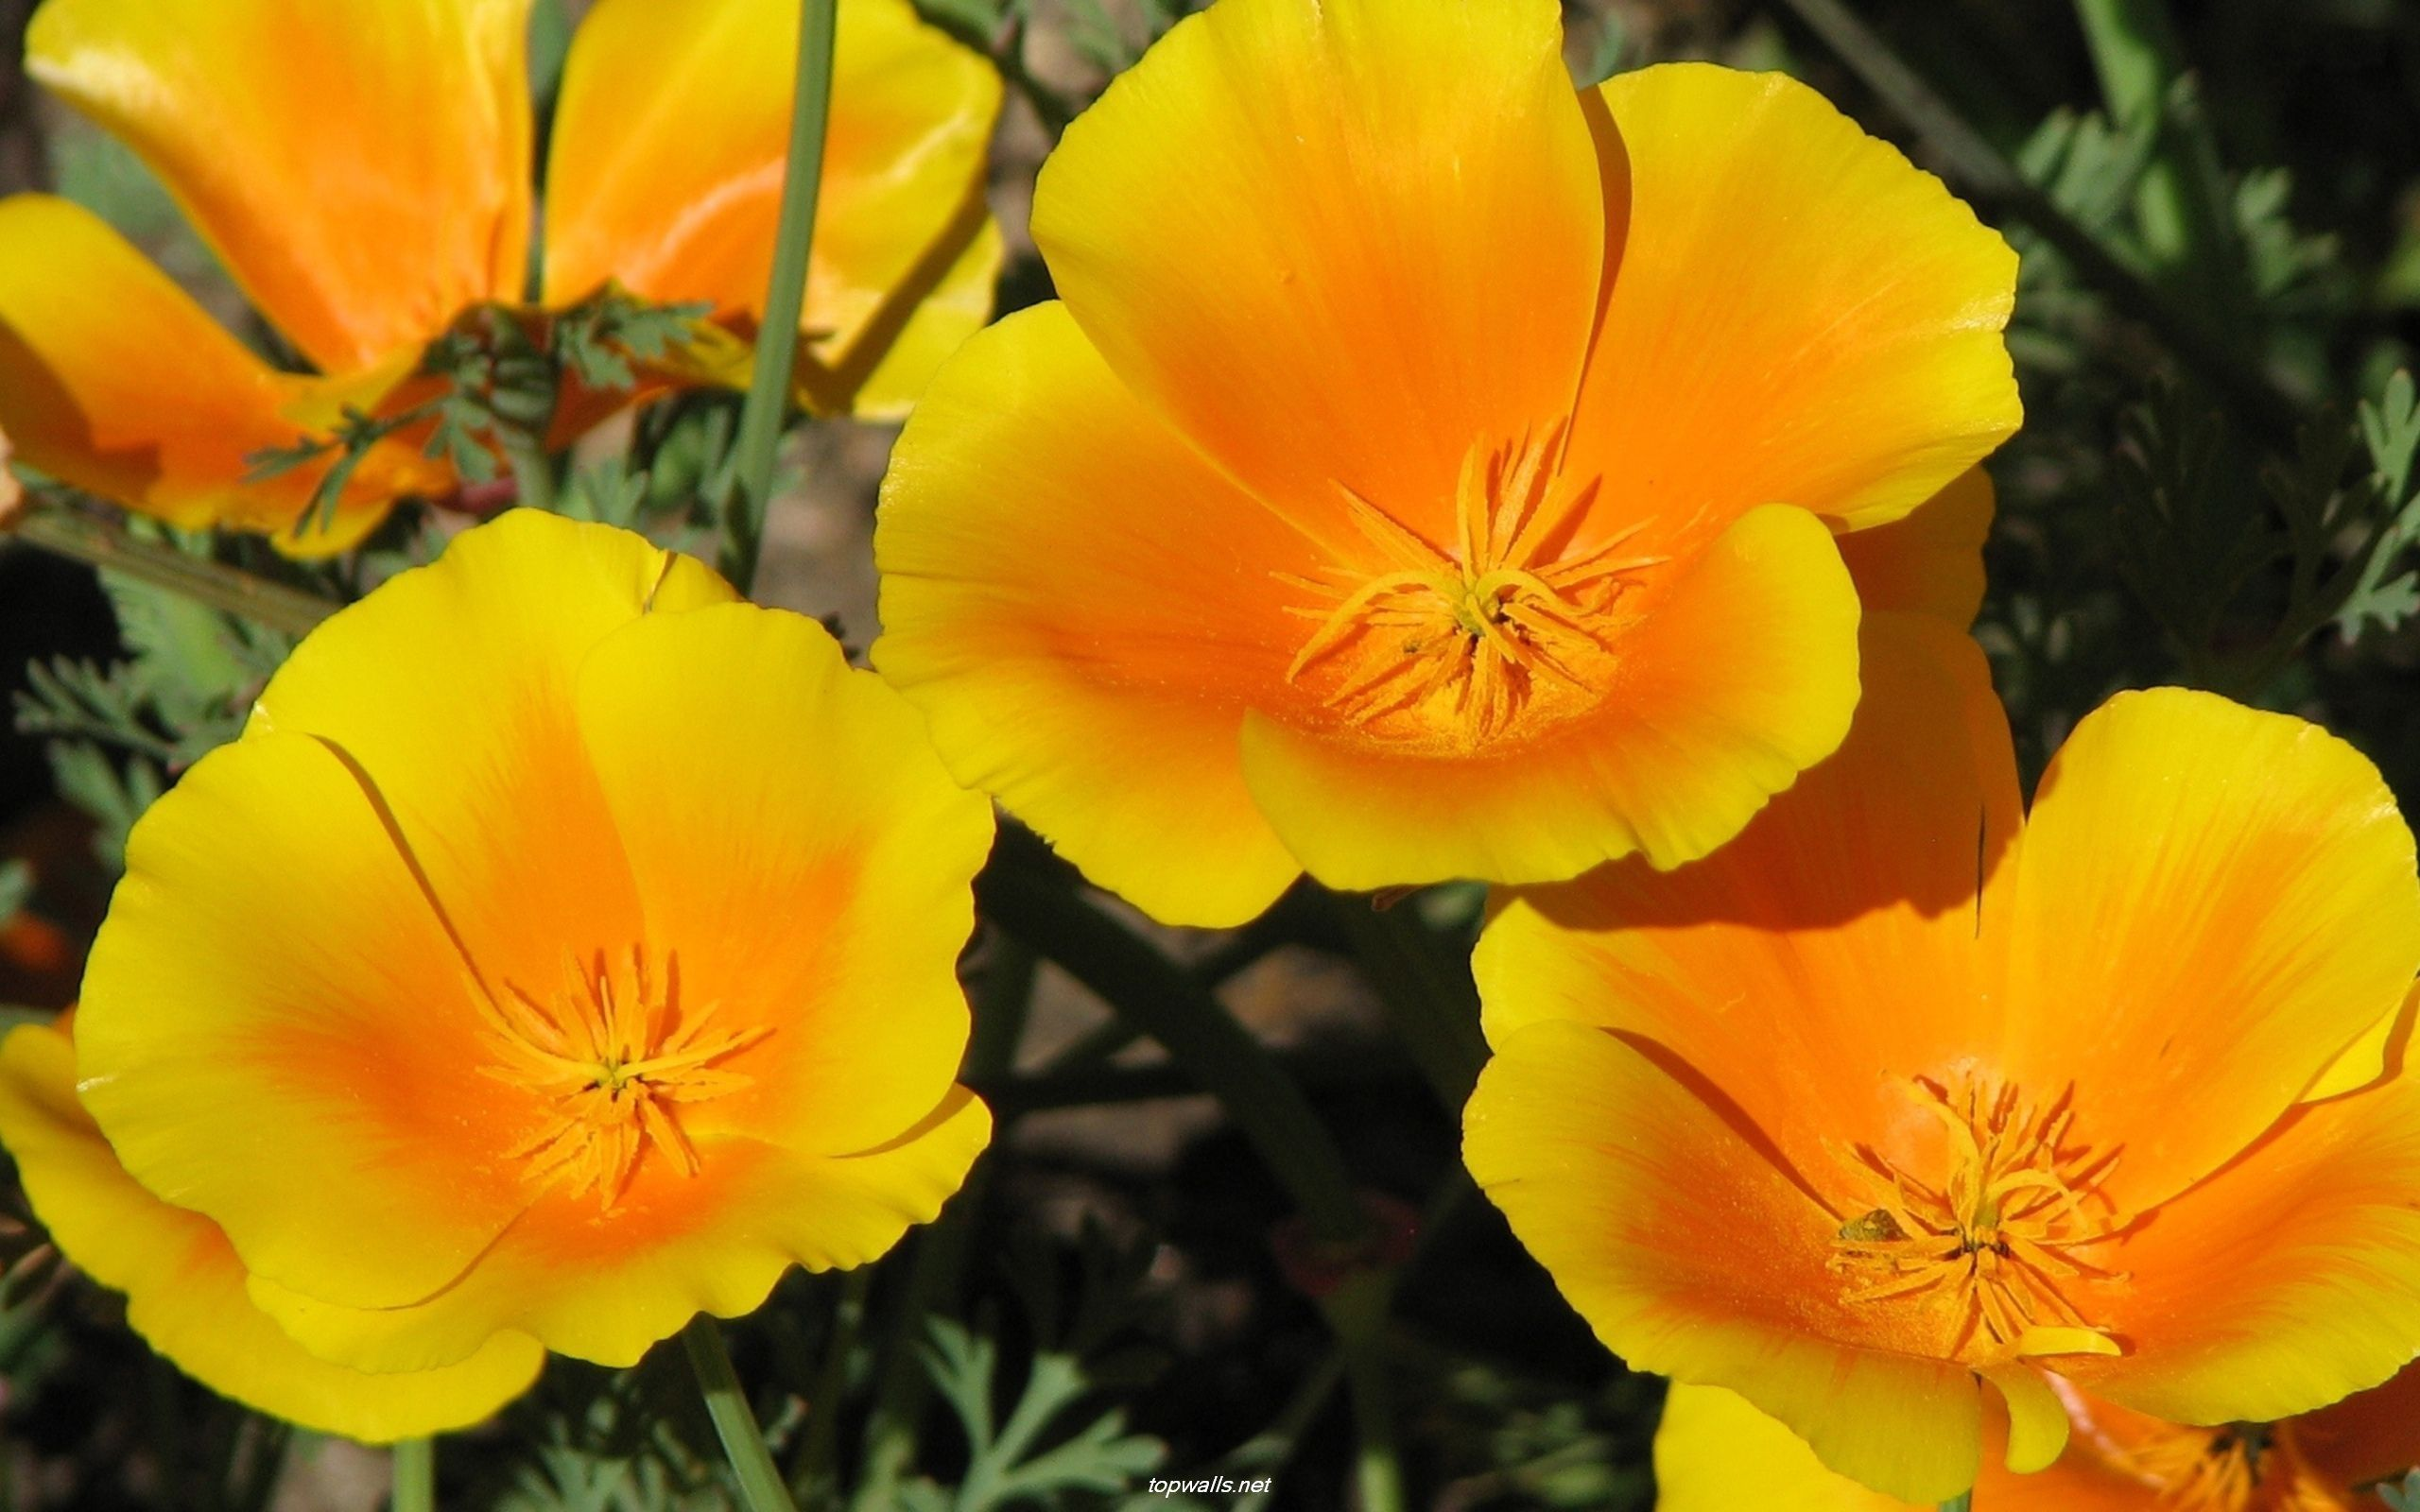 California Golden Poppy Flower Blending Washington State And New